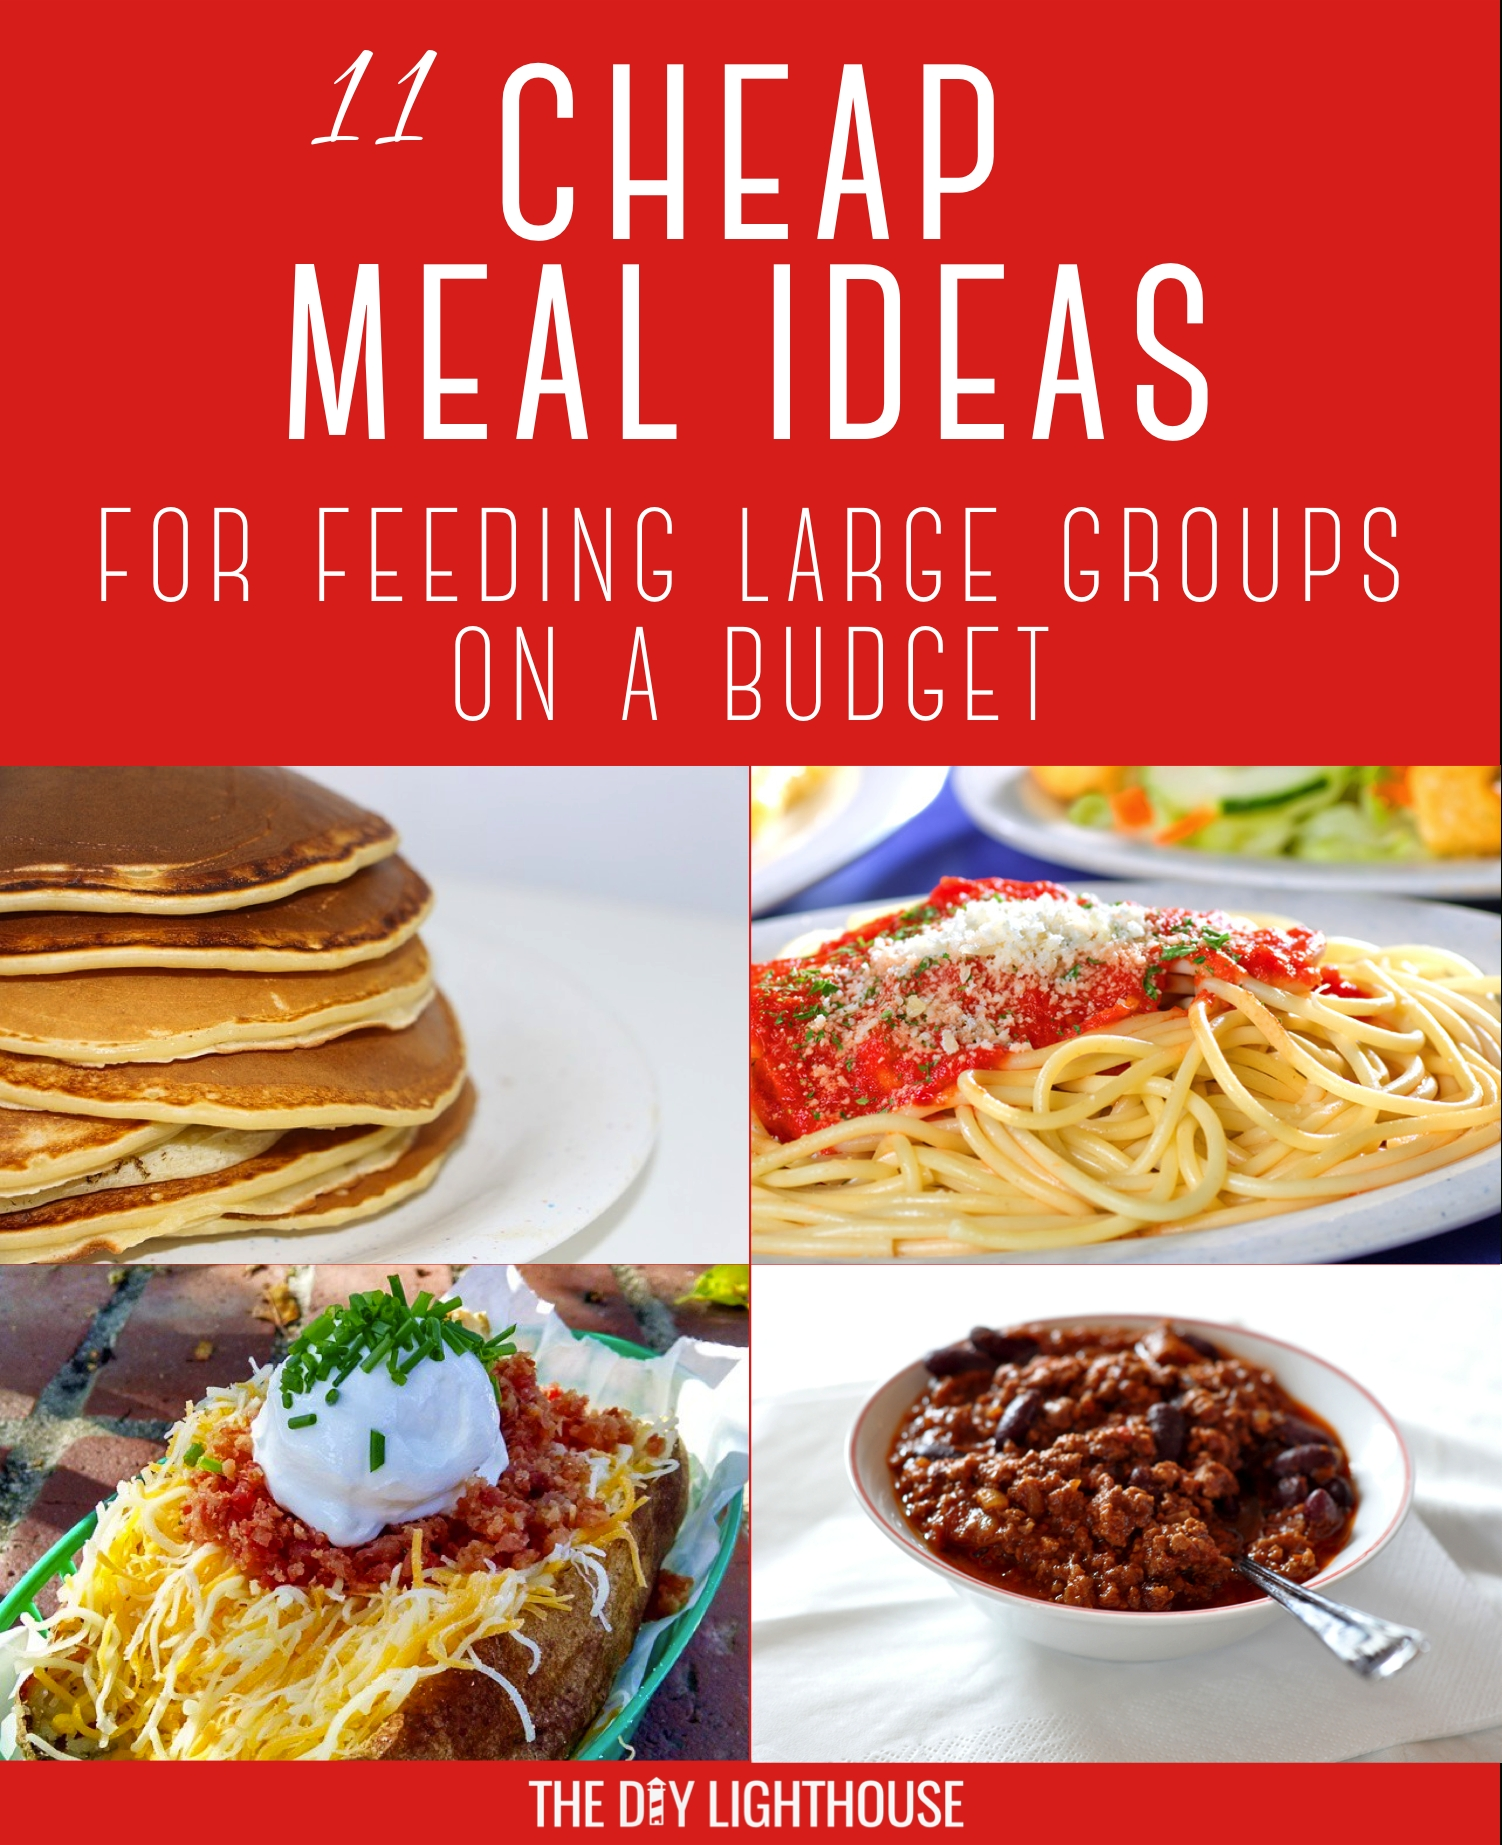 10 Spectacular Dinner Ideas For A Large Group cheap meals for feeding large groups 17 2020